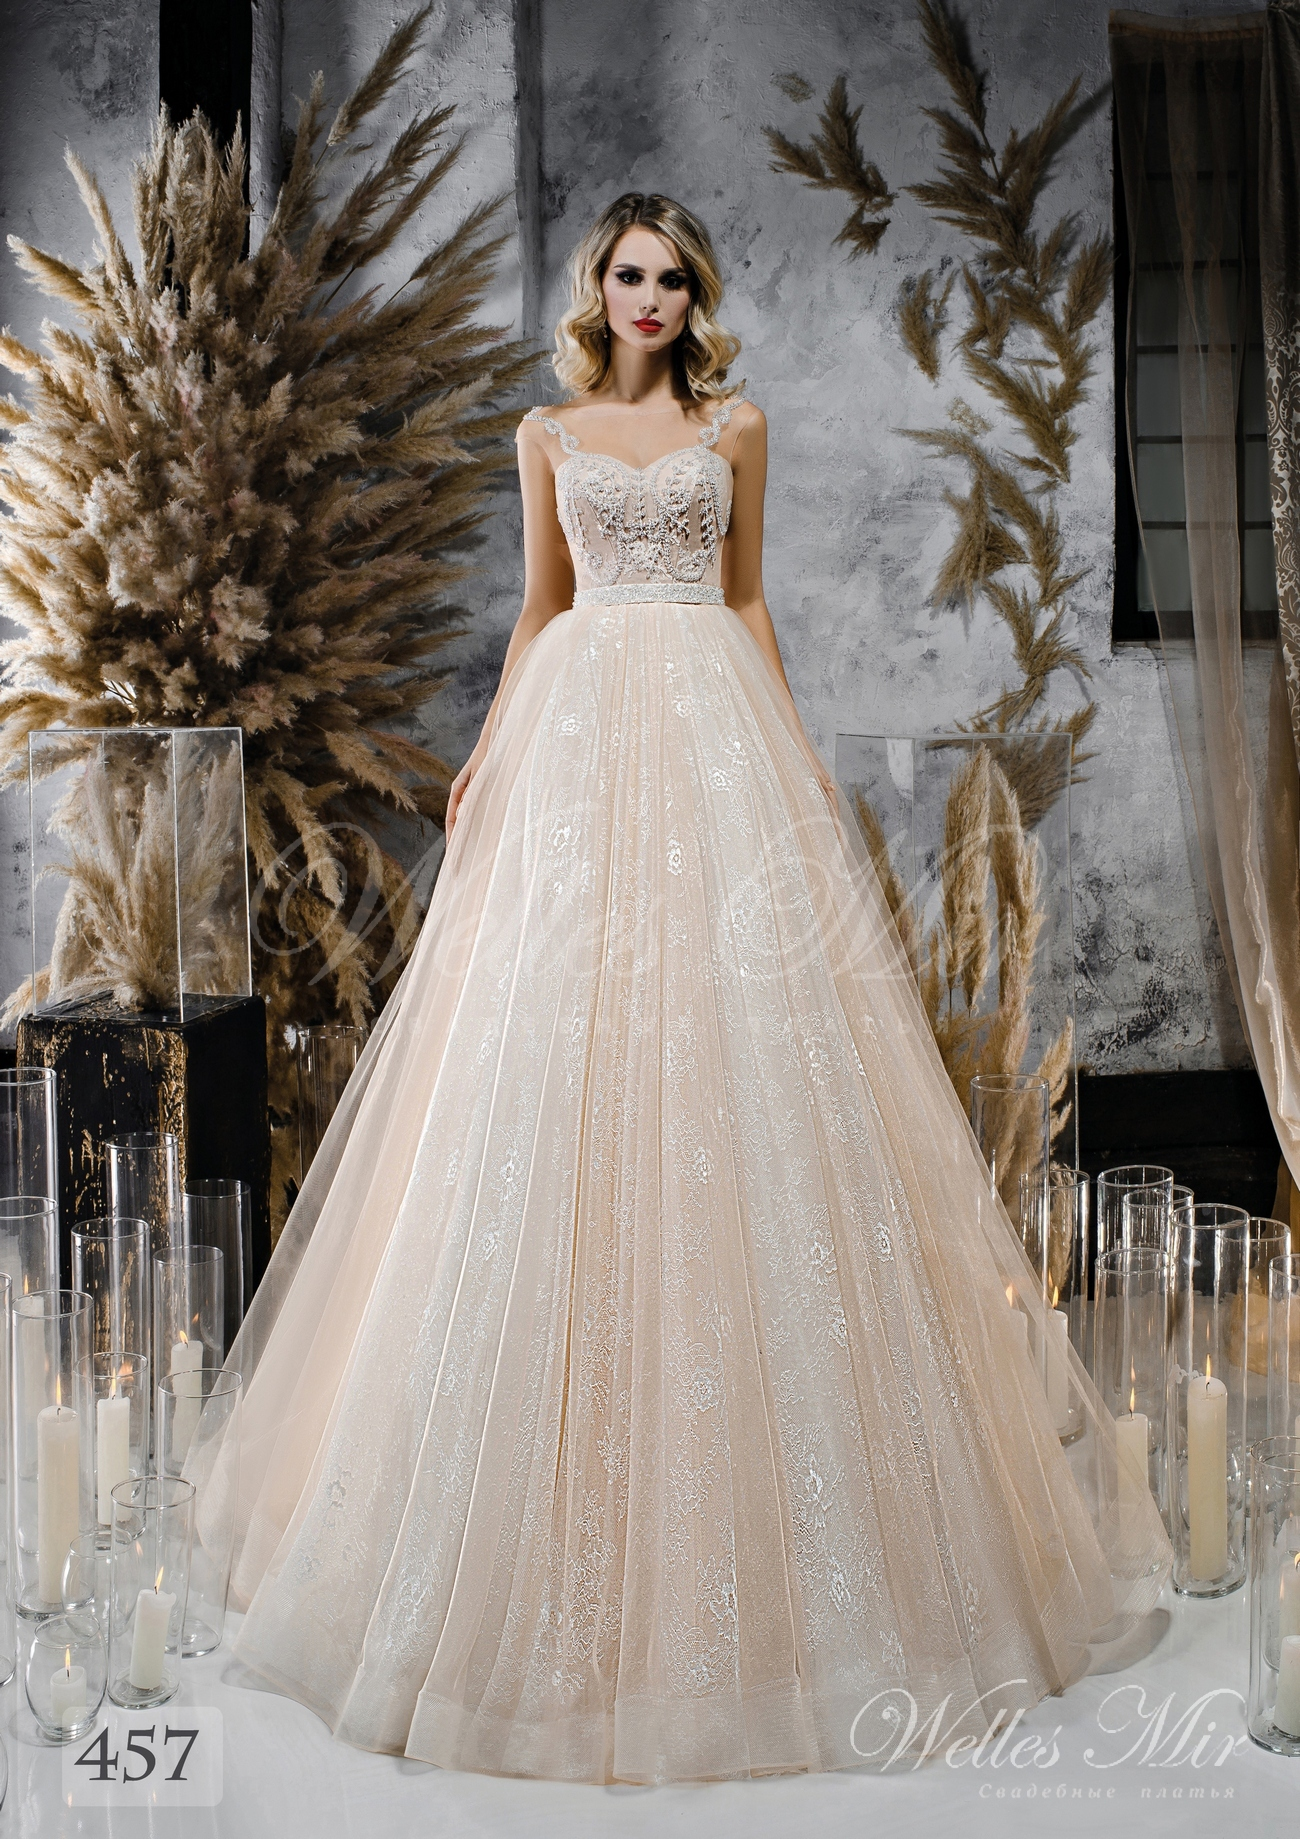 Wedding dress shade cappuccino from WellesMir